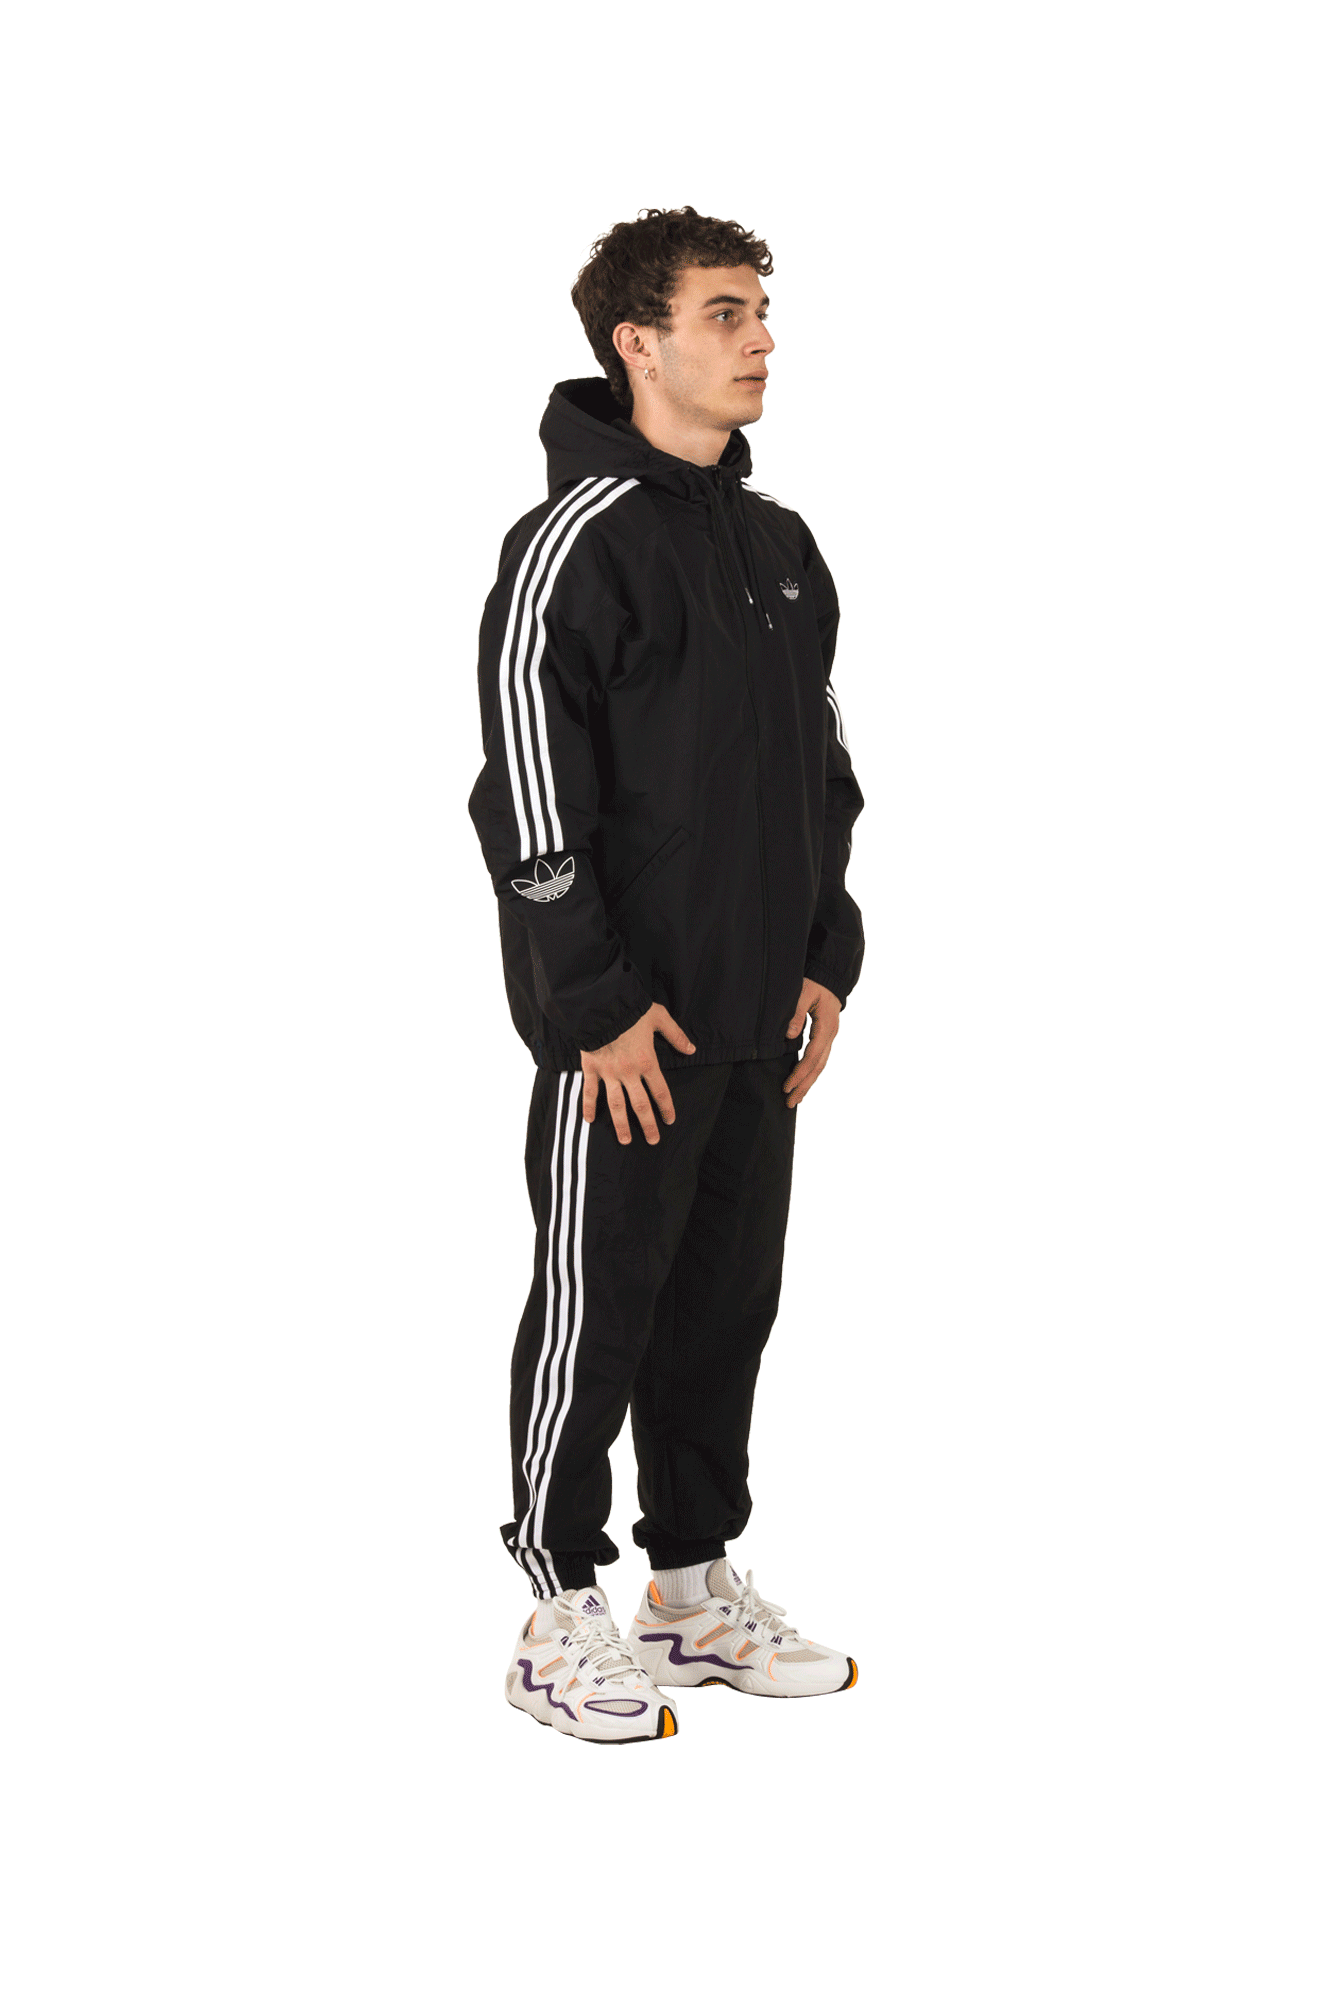 Adidas Originals Felpe Outline TRF WB Jacket Nero ED4688#000#Black#S - One Block Down